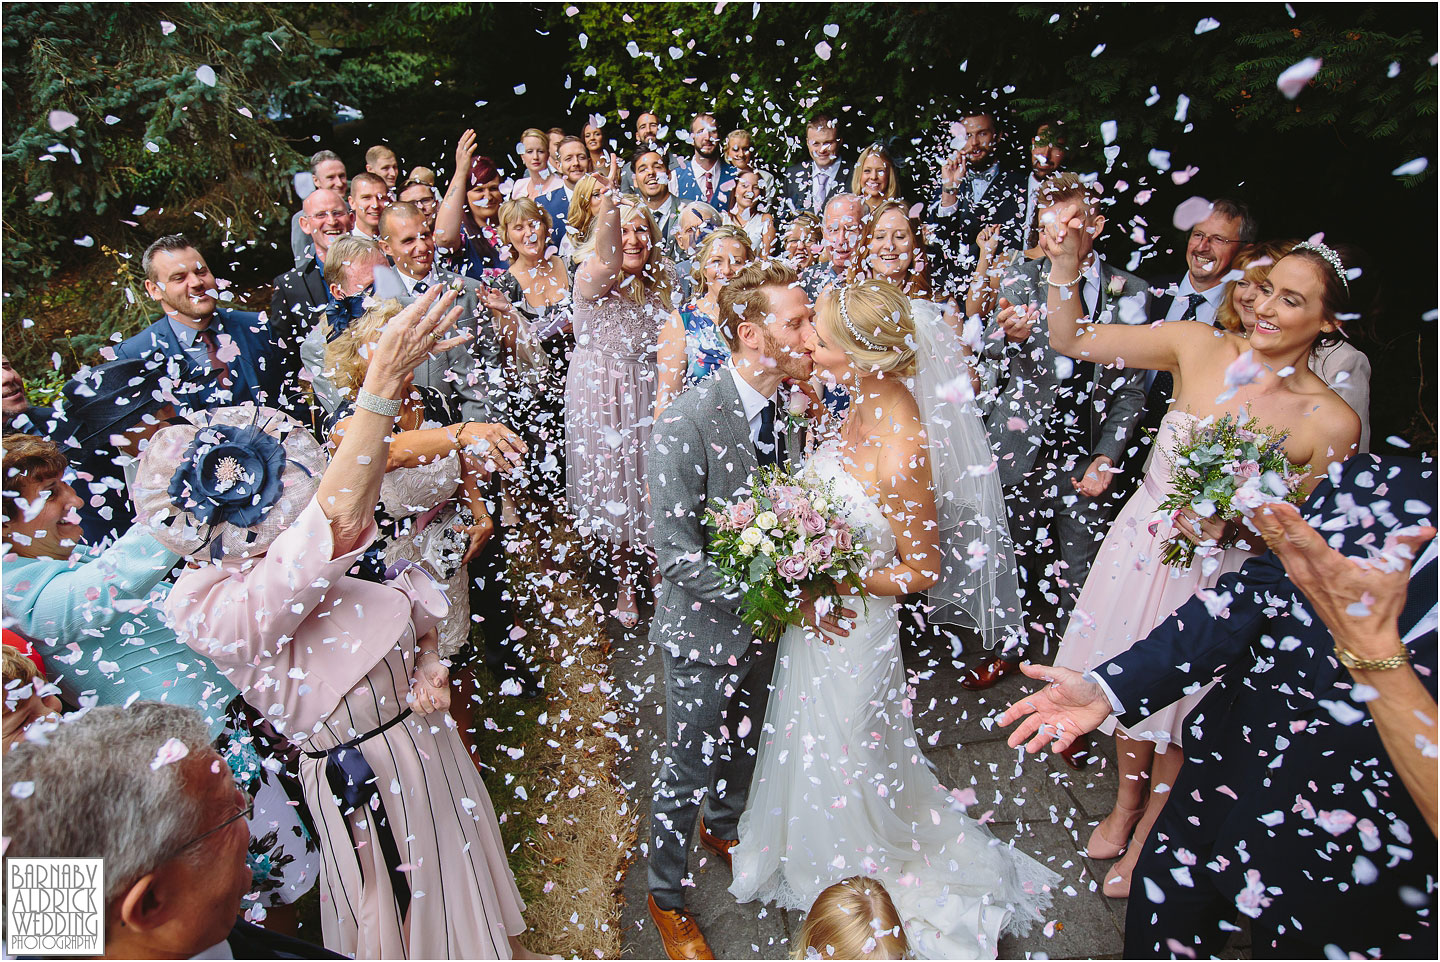 A Wedding photo of the confetti being thrown at St Helen's Church at Denton Hall in Yorkshire